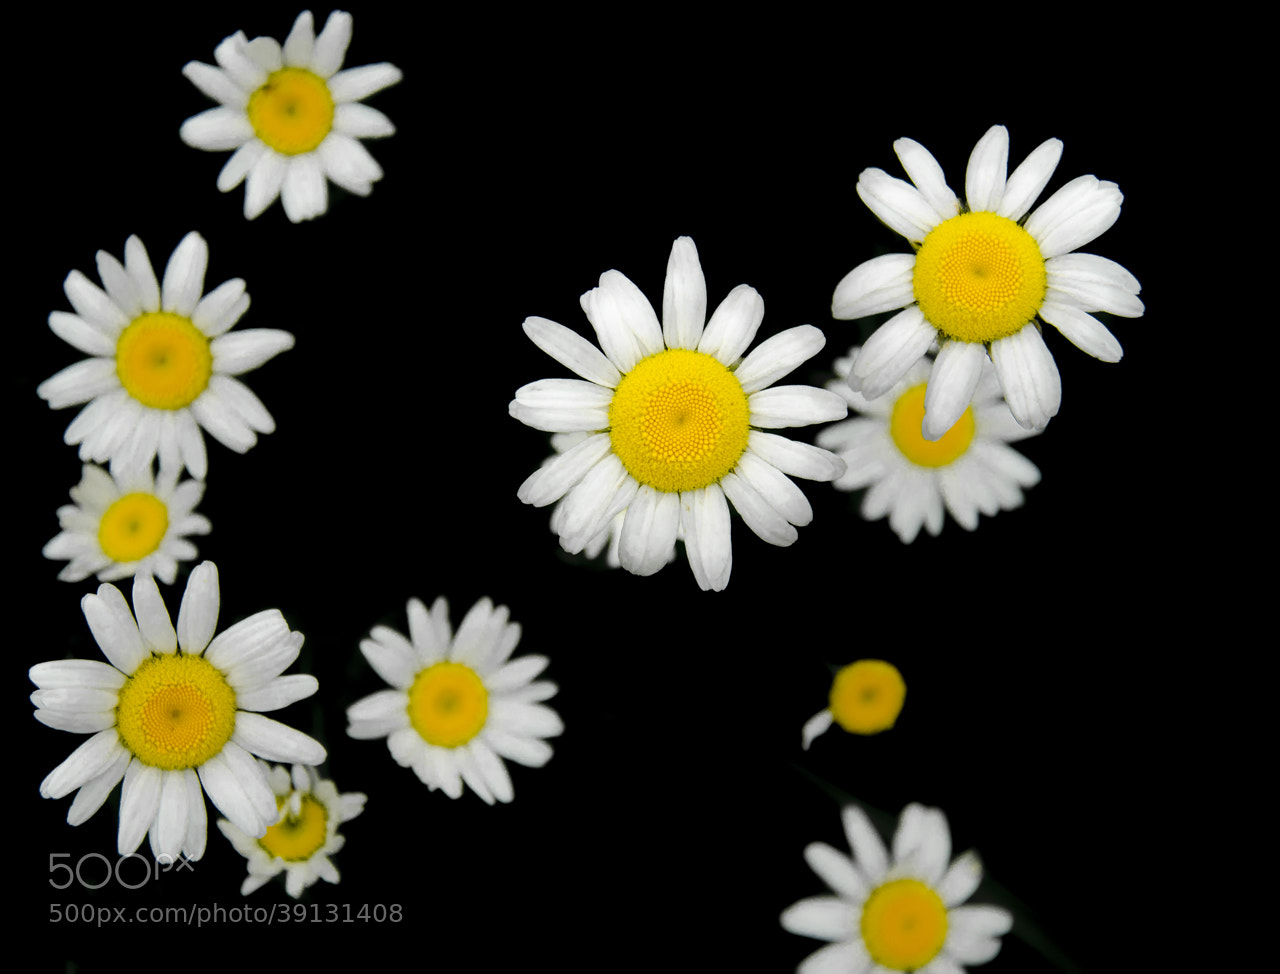 Photograph Star Flowers by Rusty Parkhurst on 500px